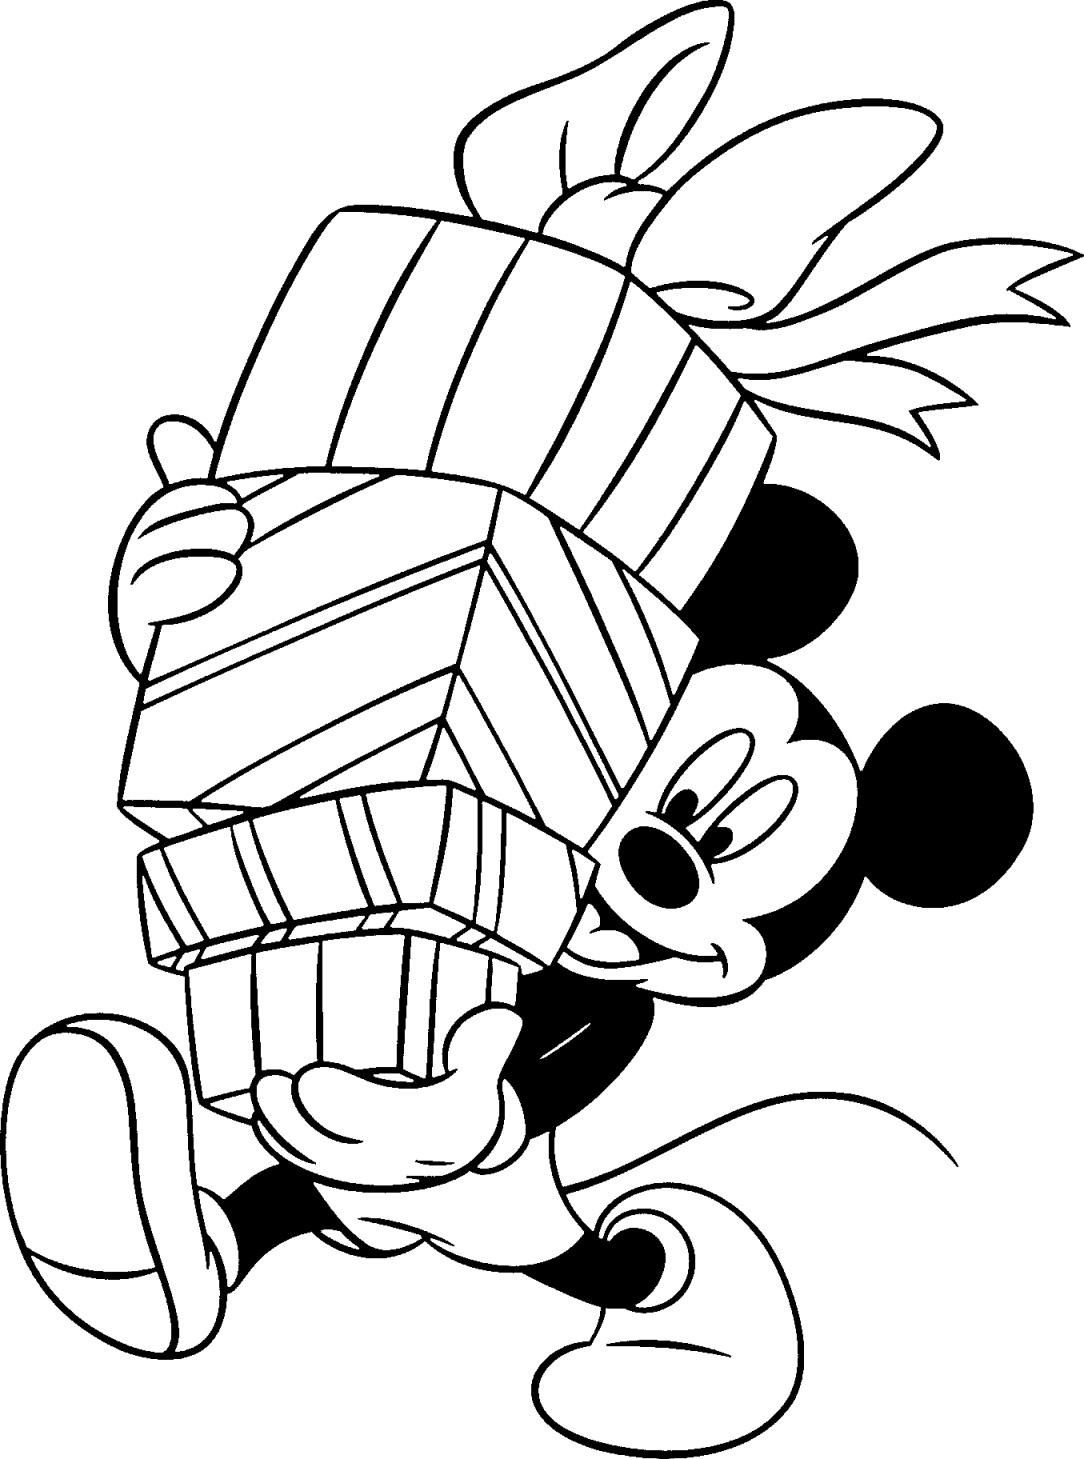 Mickey Mouse Presents Color Characters | For you, Jen... | Pinterest ...